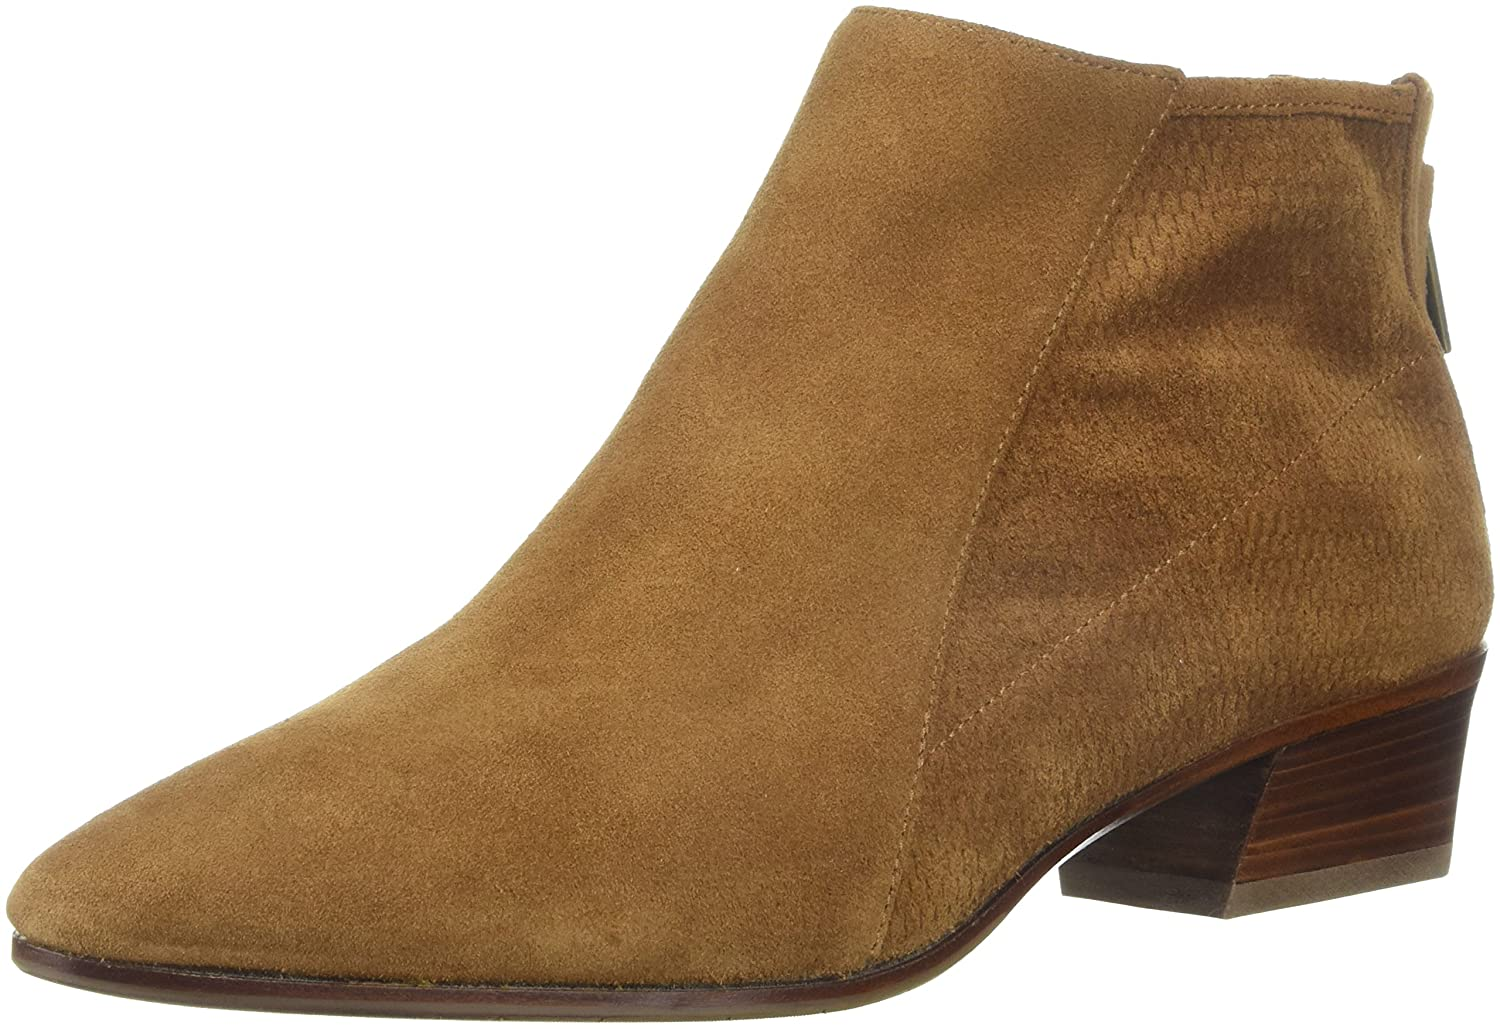 Aquatalia by Marvin K. Women's Fianna Perf Suede Ankle Boot B077H518CD 7 B(M) US|Cognac